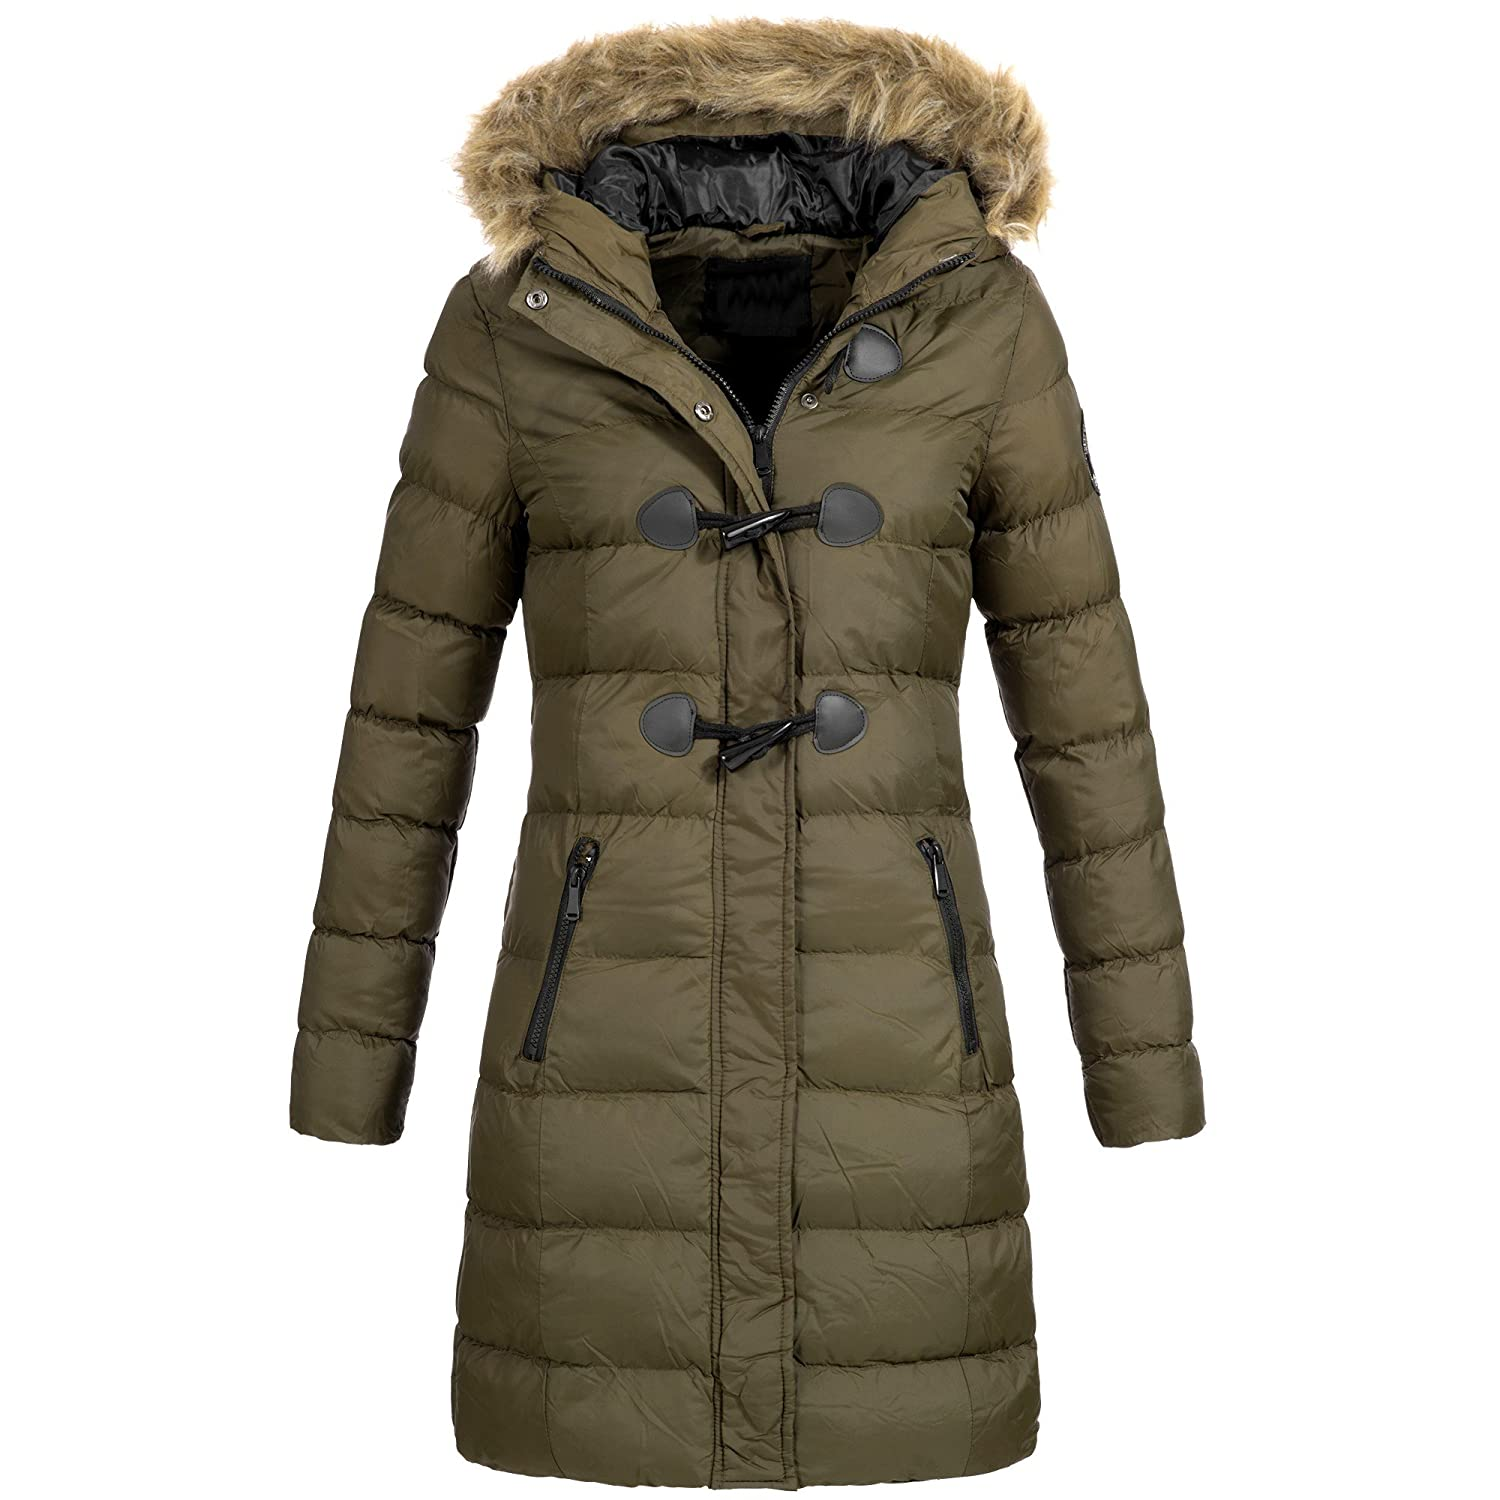 AZ Fashion Damen Steppmantel Winter Mantel Parka Jacke warm S XXL AZ29 4 Farben